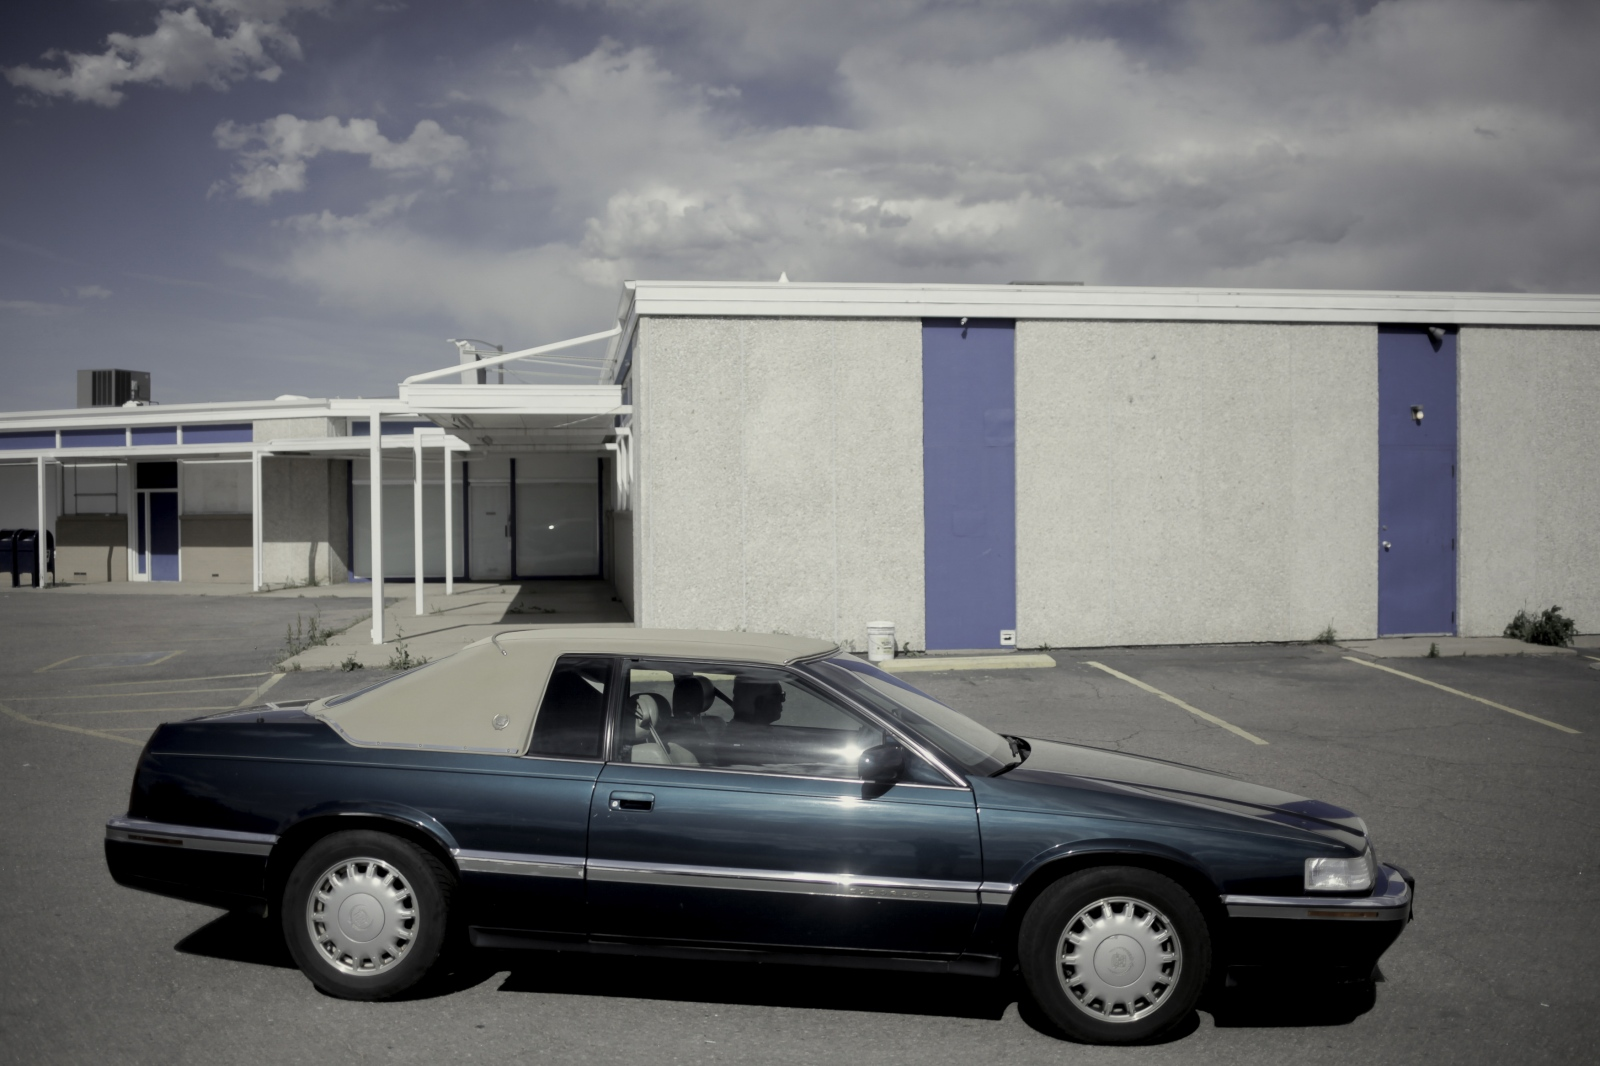 A parking lot in an abandoned strip mall.